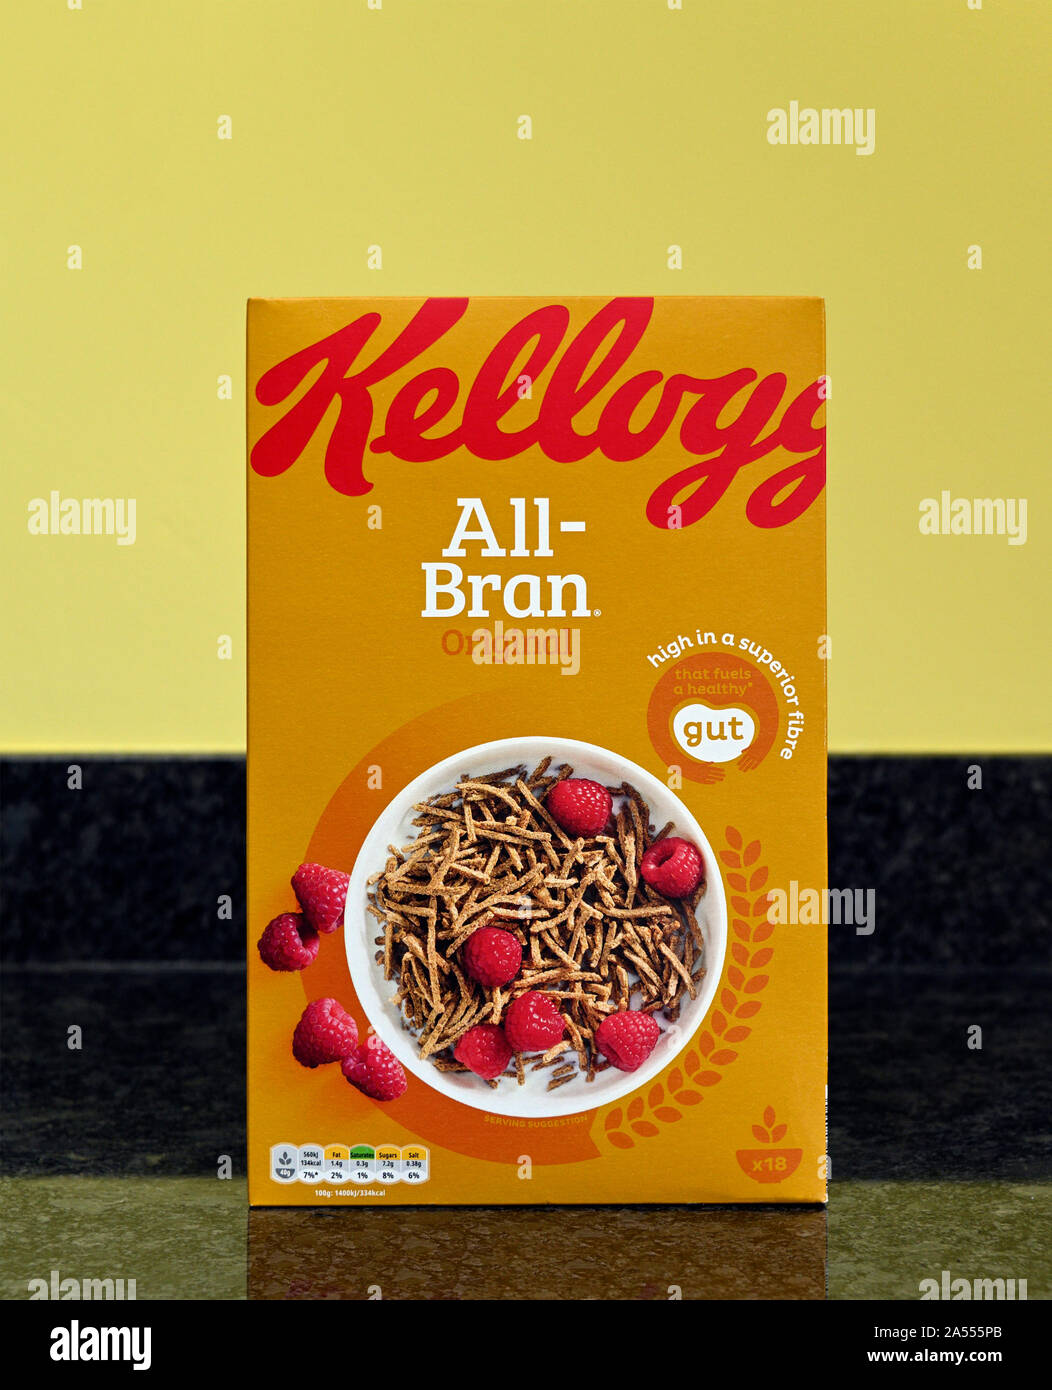 Pack of Kellogg's All-Bran Original breakfast cereal. High in a superior fibre that fuels a healthy gut. Stock Photo